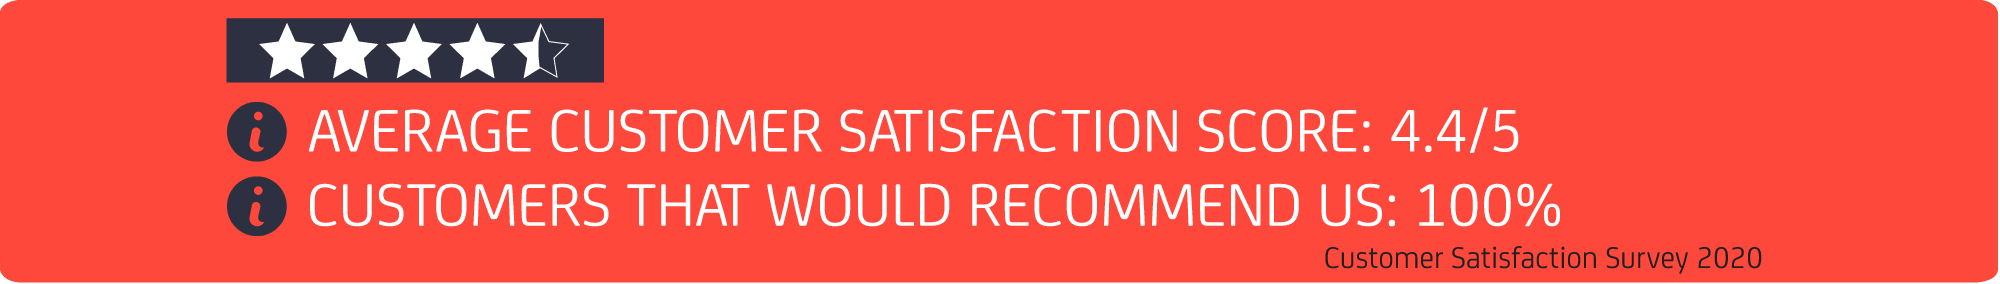 Customer satisfaction score banner 2020